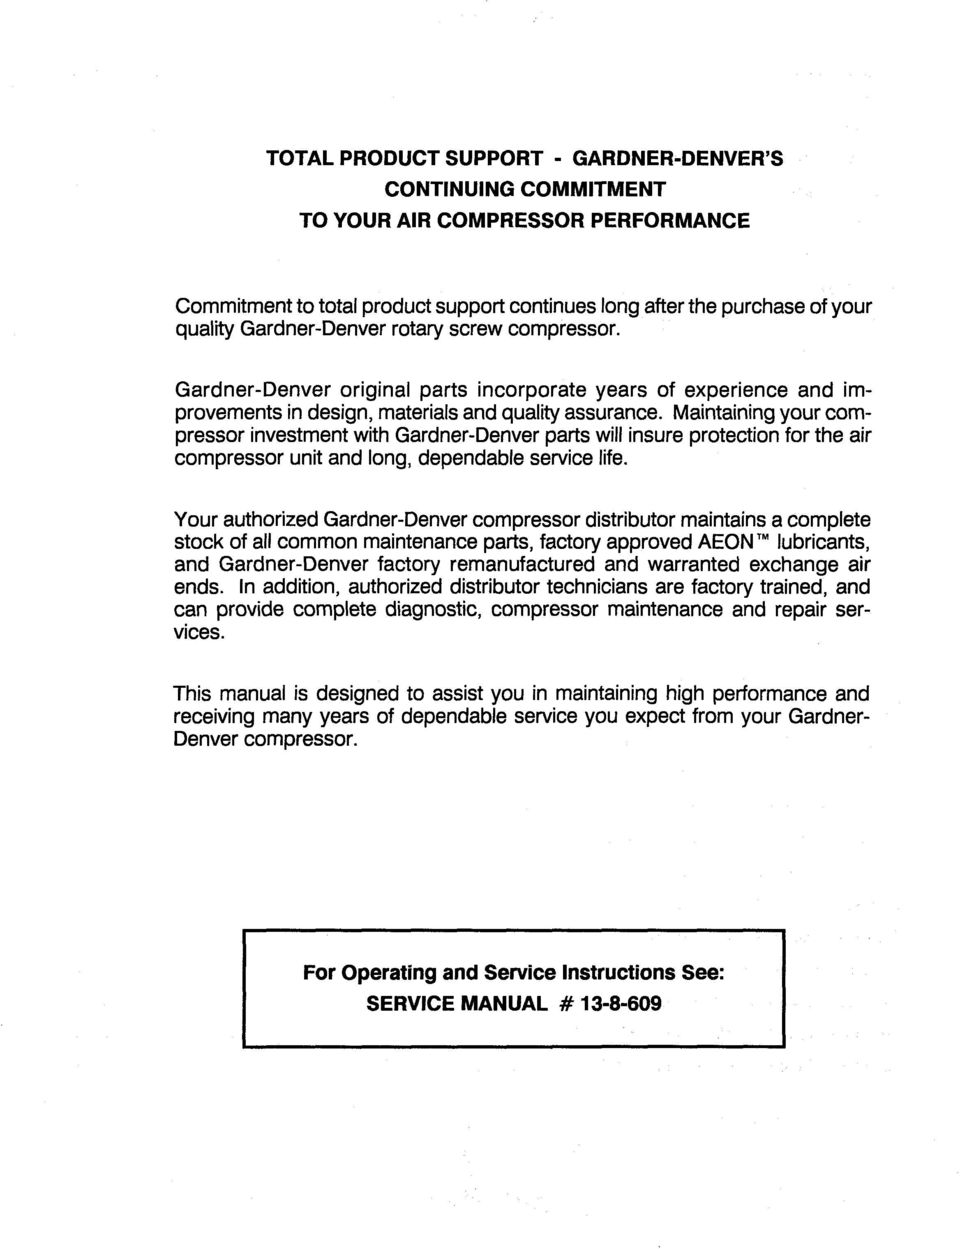 hight resolution of maintaining your compressor investment with gardner denver parts will insure protection for the air compressor